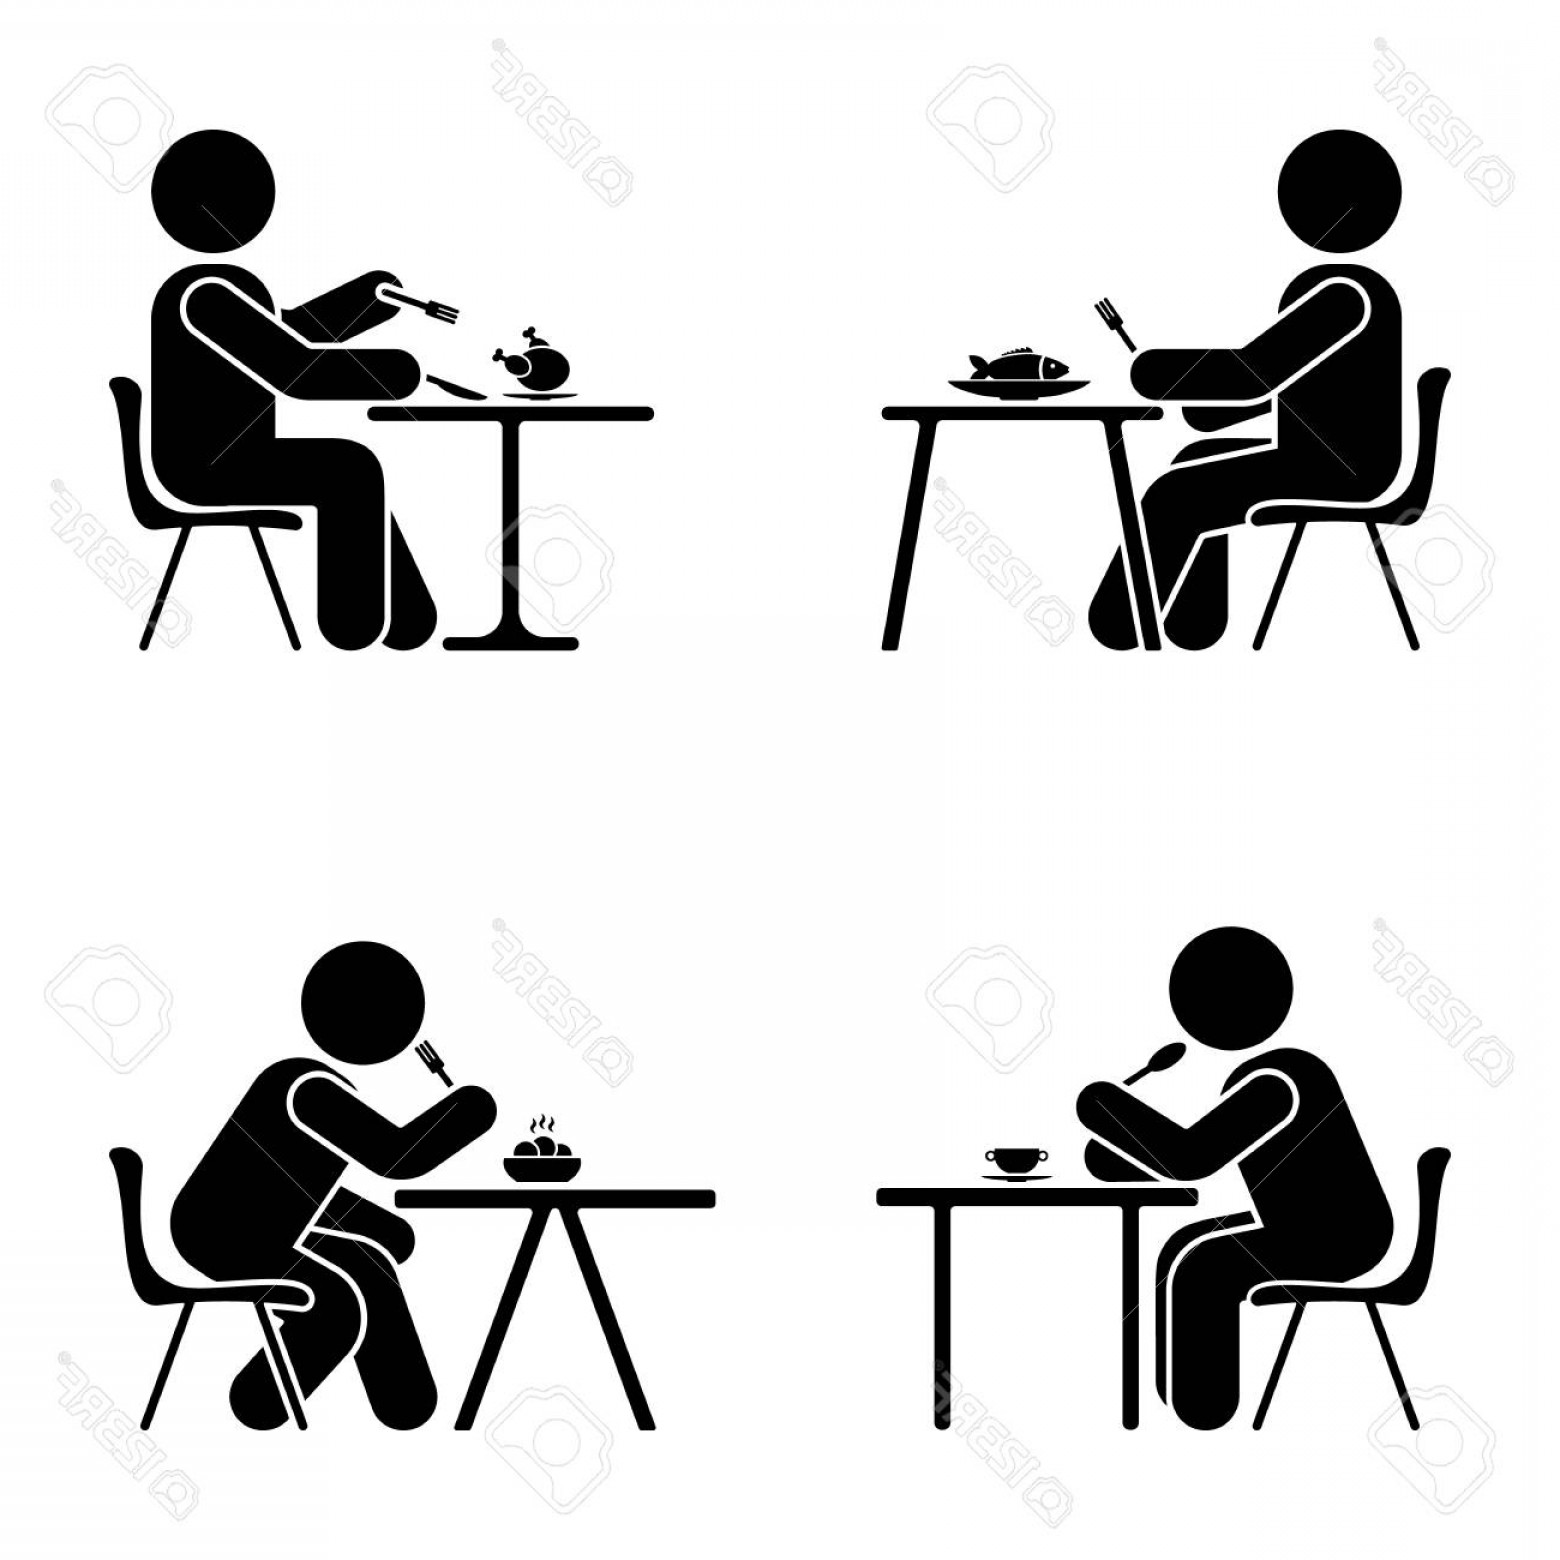 1560x1560 Photostock Vector Eating And Sitting Vector Pictogram Stick Figure